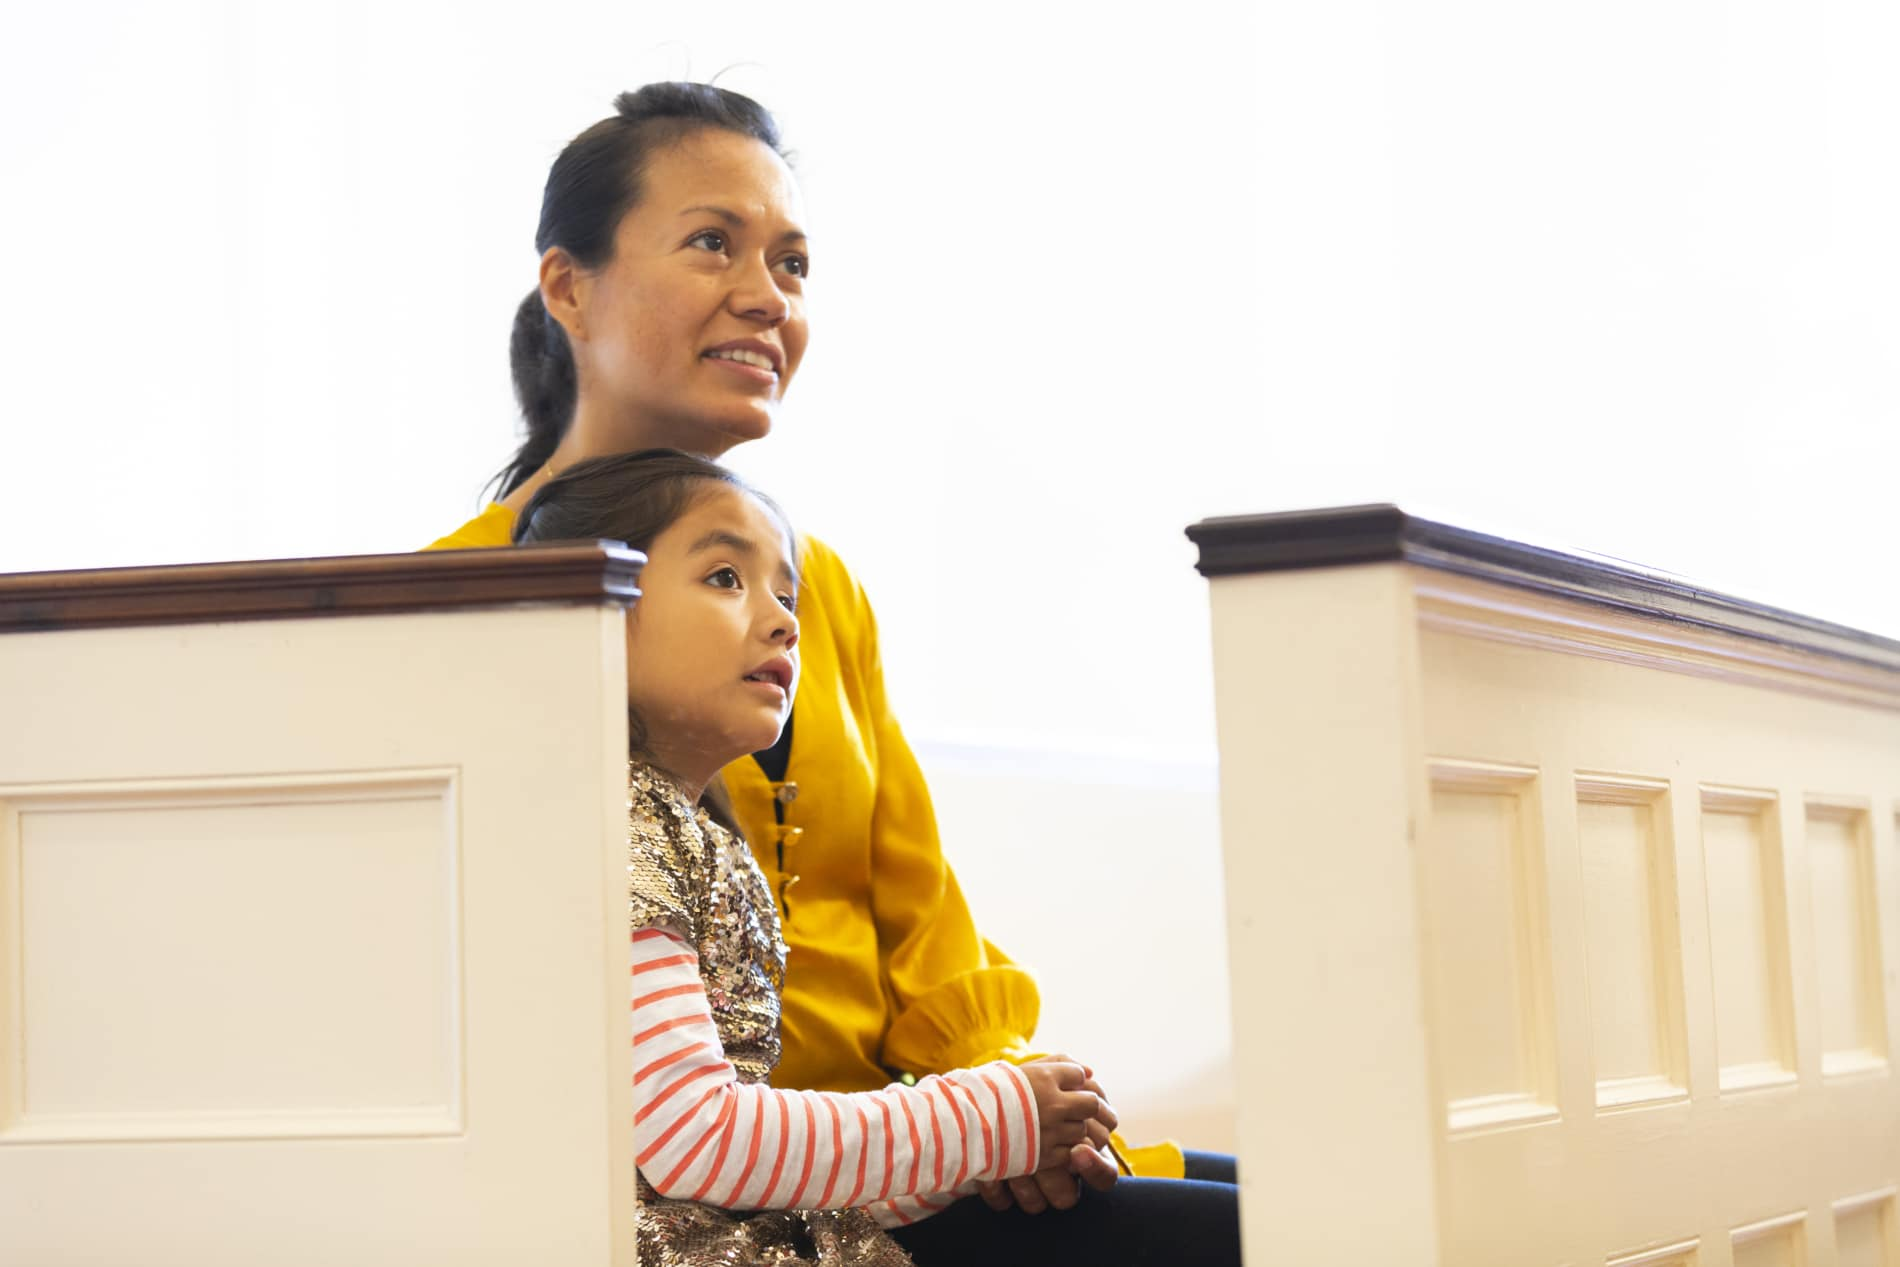 A mother and her young daughter seated in a pew